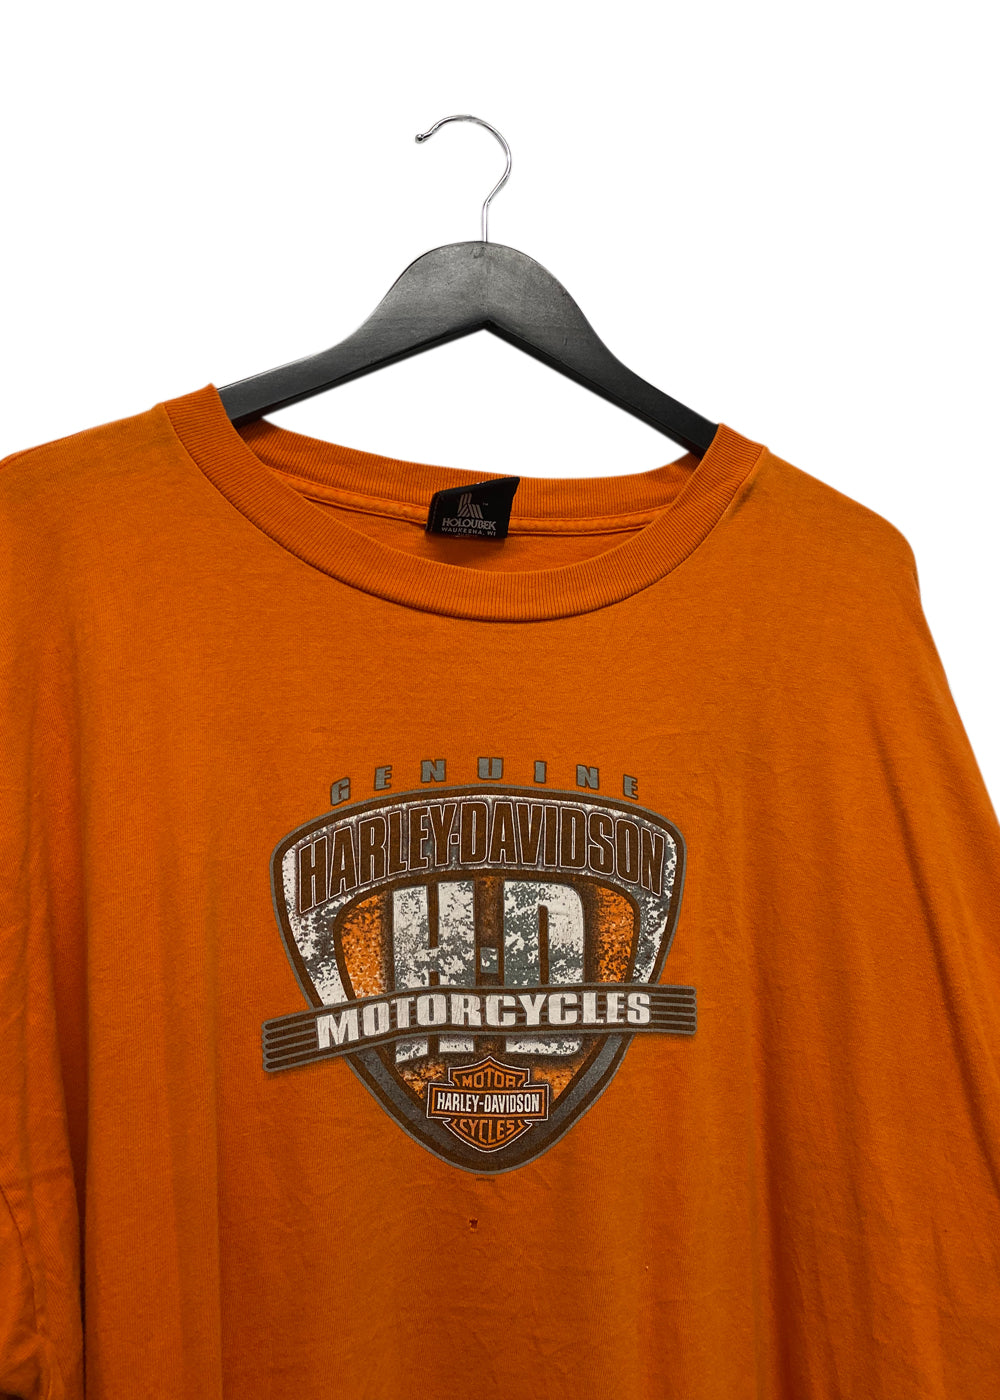 LED ZEPPELIN 'STAIRWAY TO HEAVEN' RARE TEE